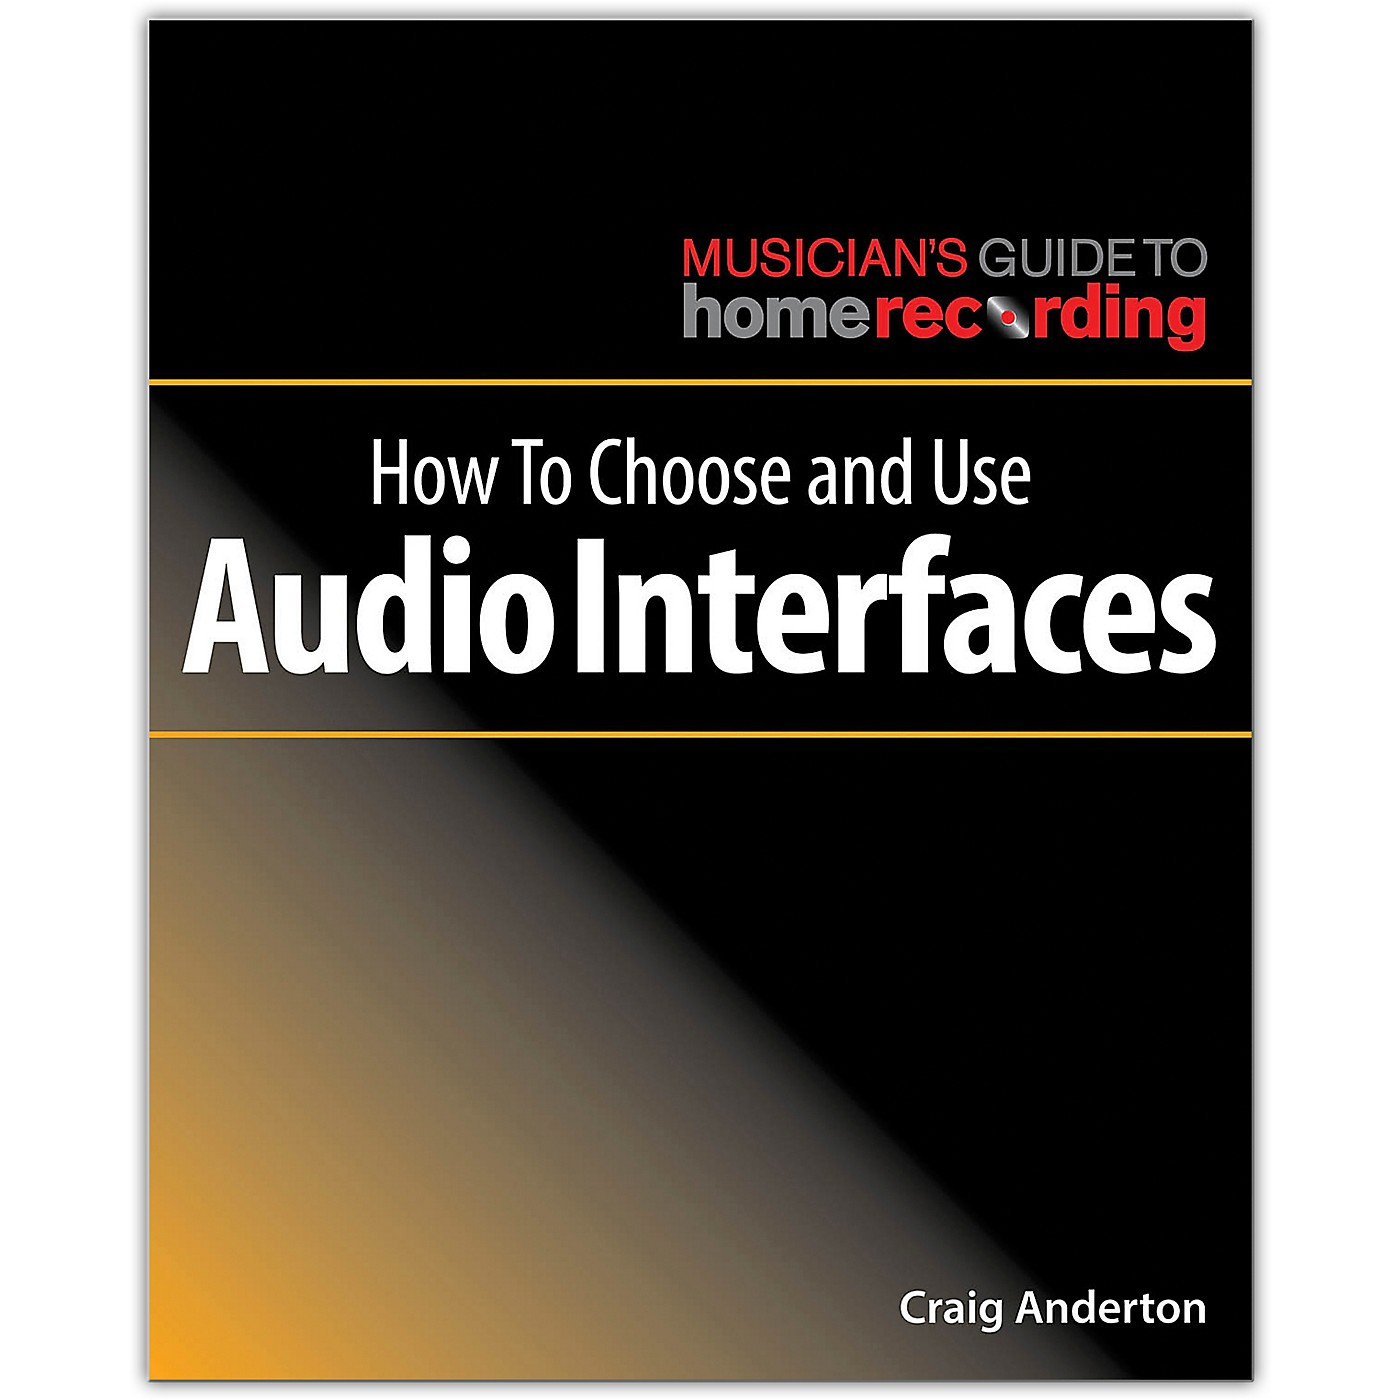 Hal Leonard How to Choose and Use Audio Interfaces - Musician's Guide Home Recording thumbnail